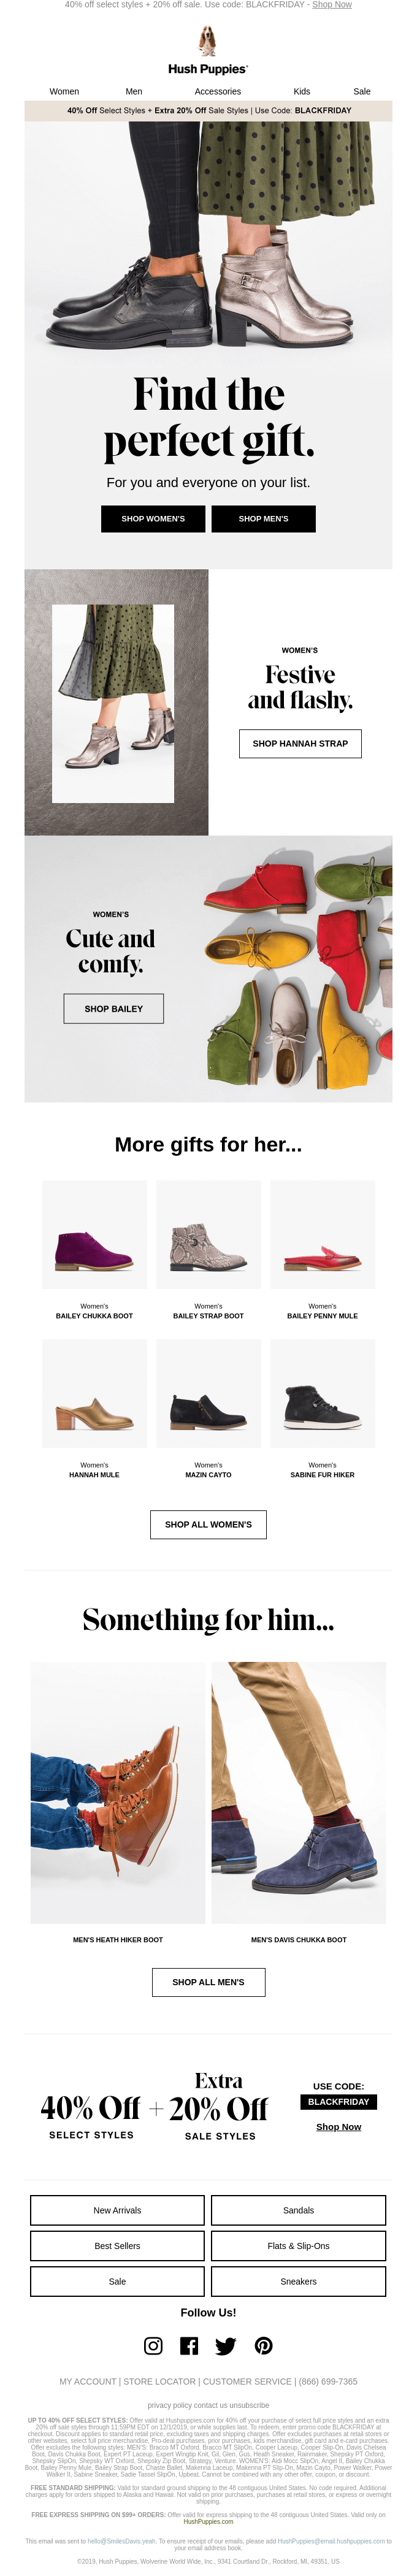 gift guide email from Hush Puppies